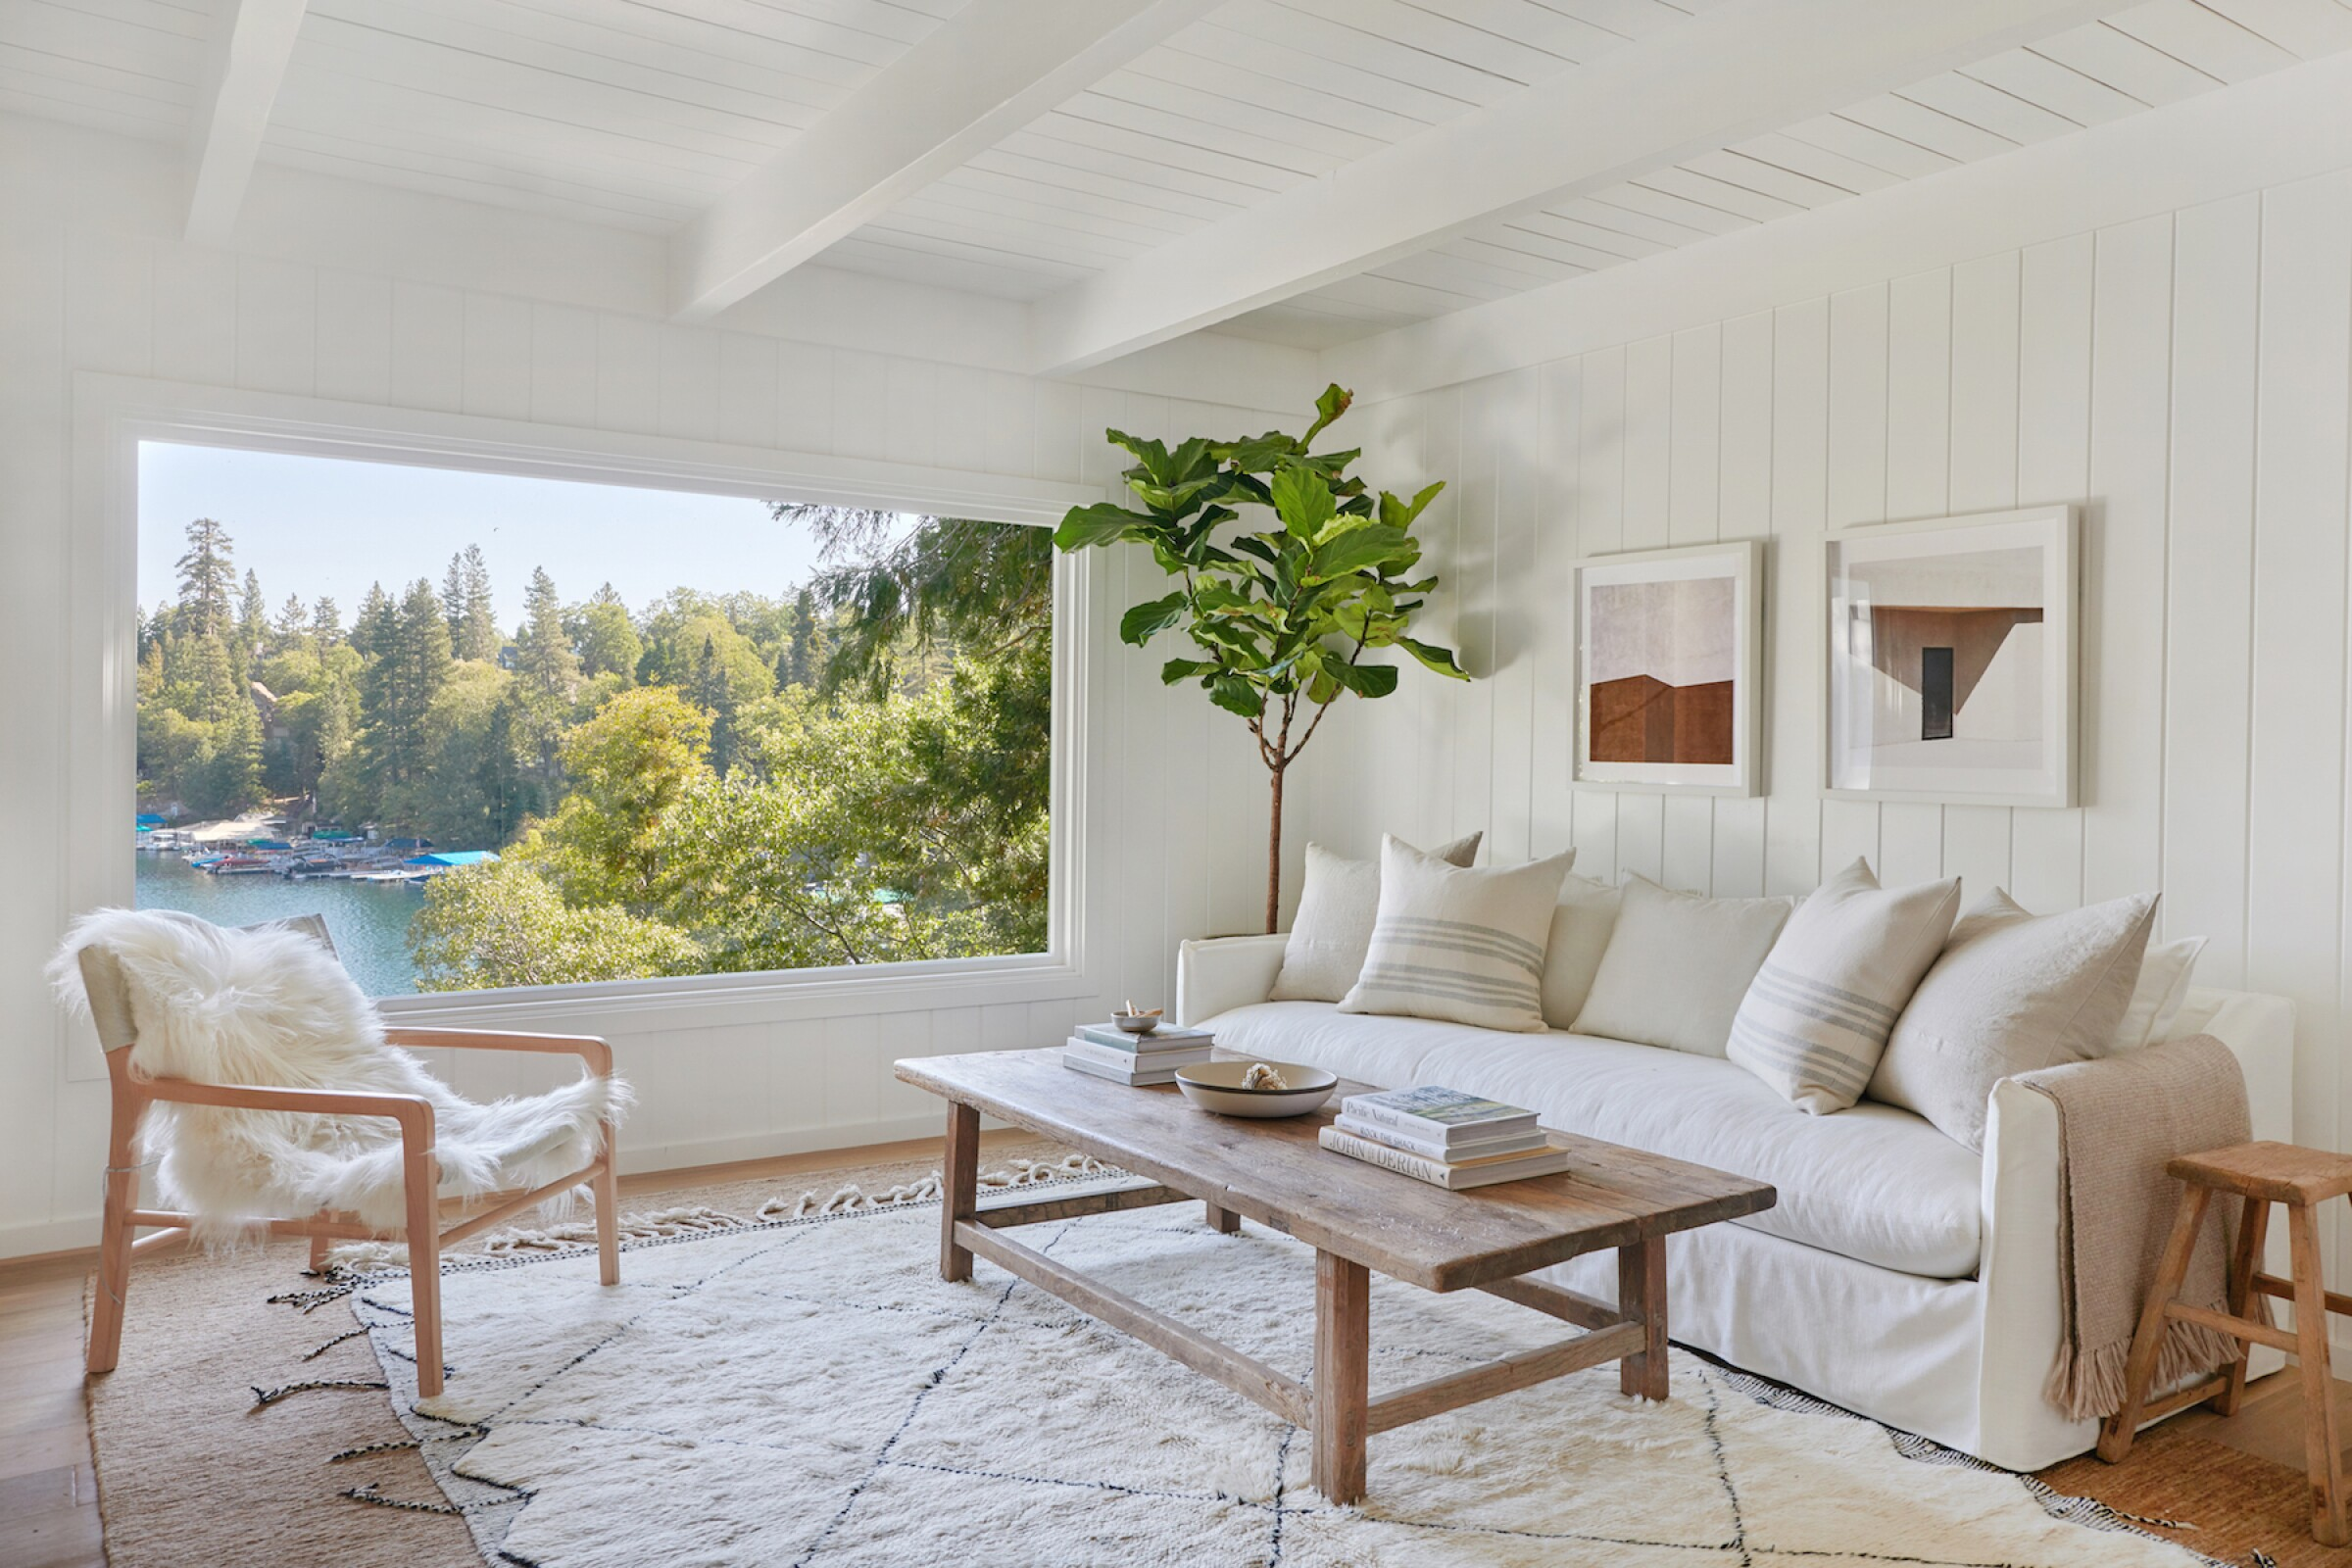 A peek inside a lifestyle influencer's cozy, all-white winter cabin - Los Angeles Times